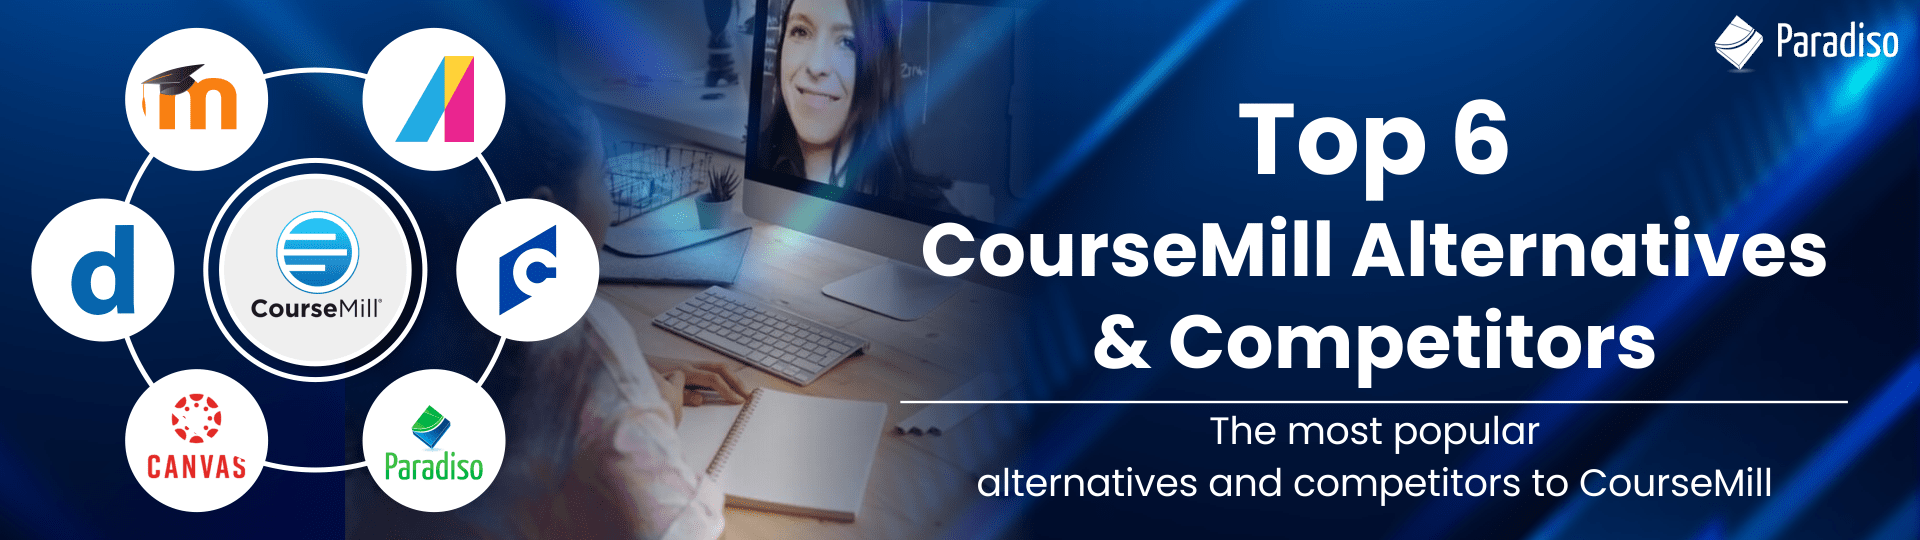 Top 6 CourseMill Alternatives & Competitors